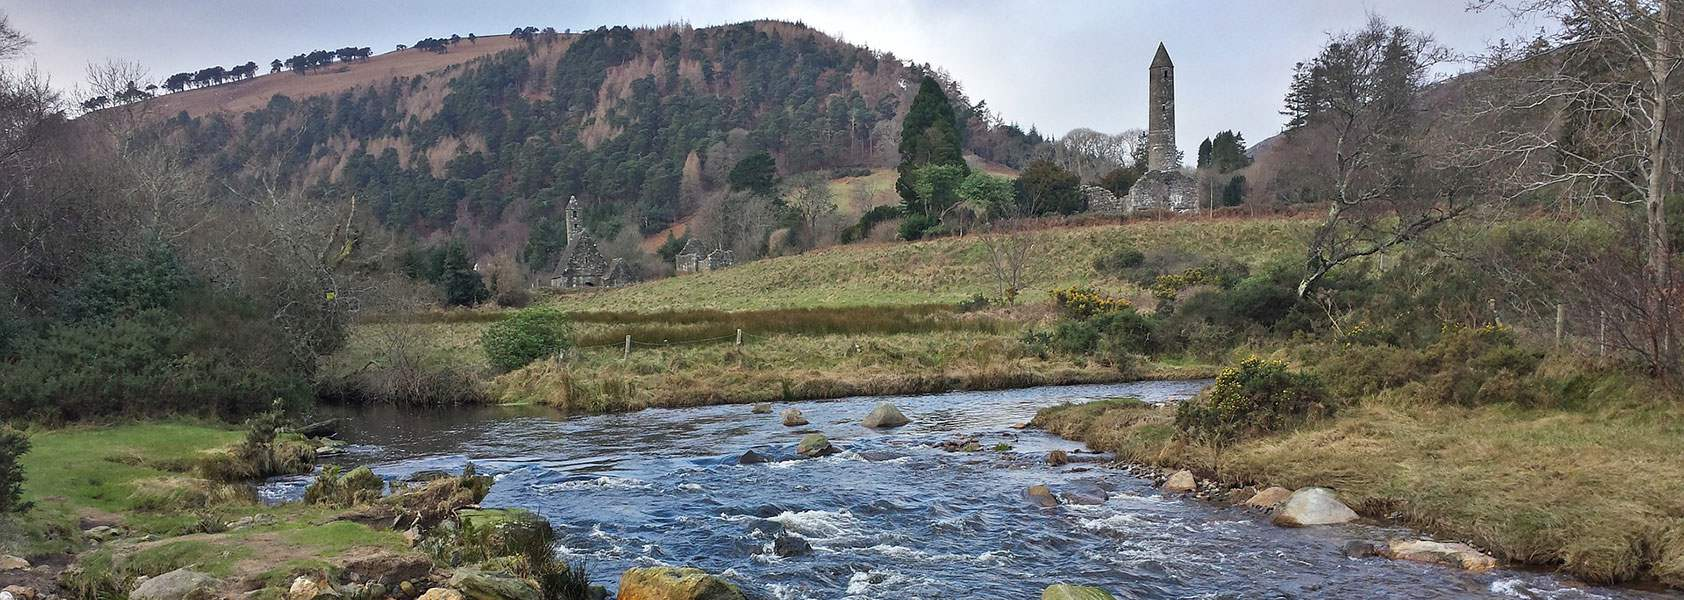 Ierland | Wandelen over de Wicklow Way